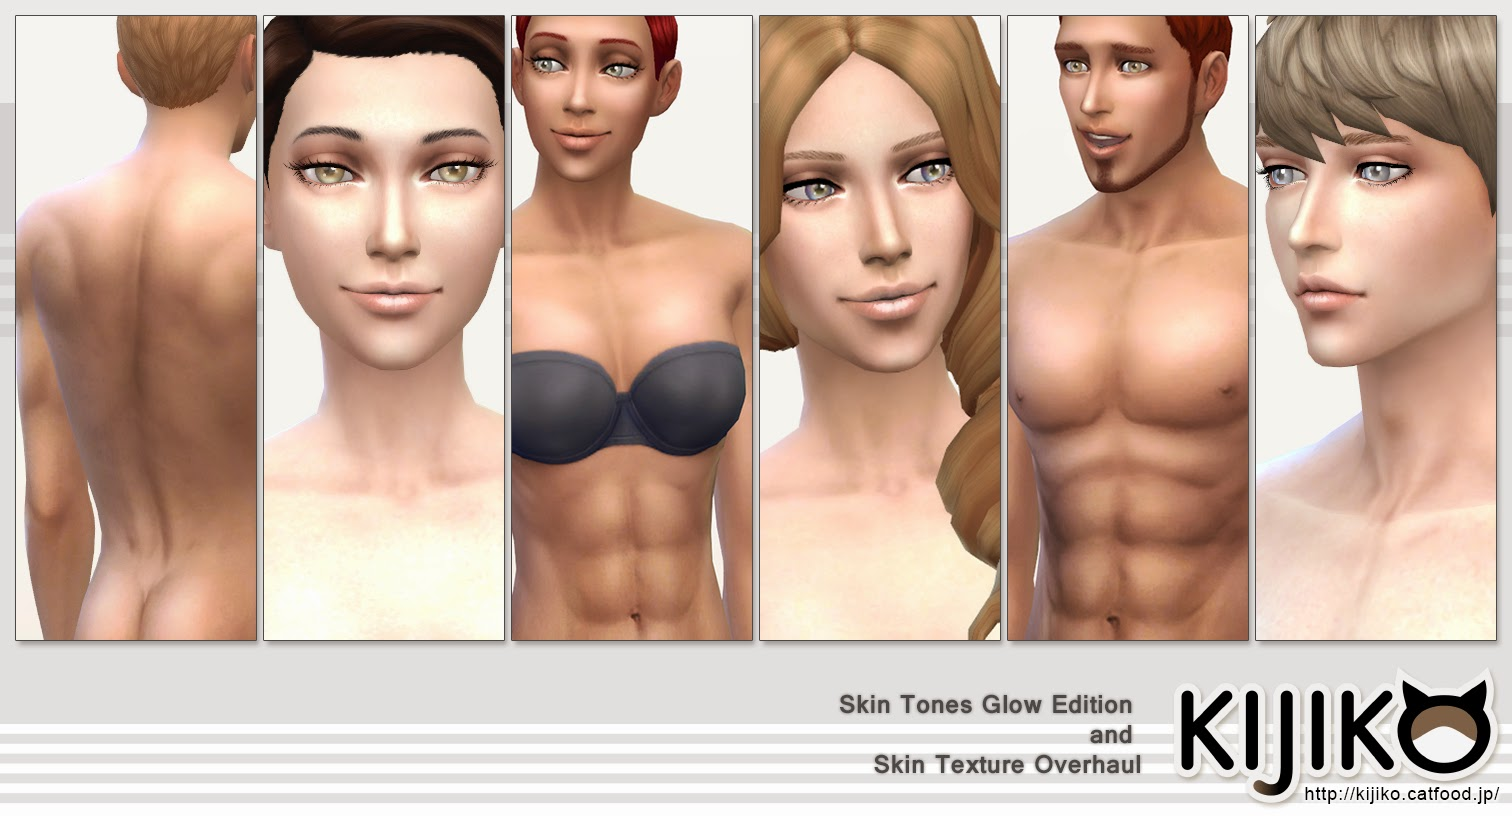 My sims 4 blog skin tones glow edition and skin texture overhaul by